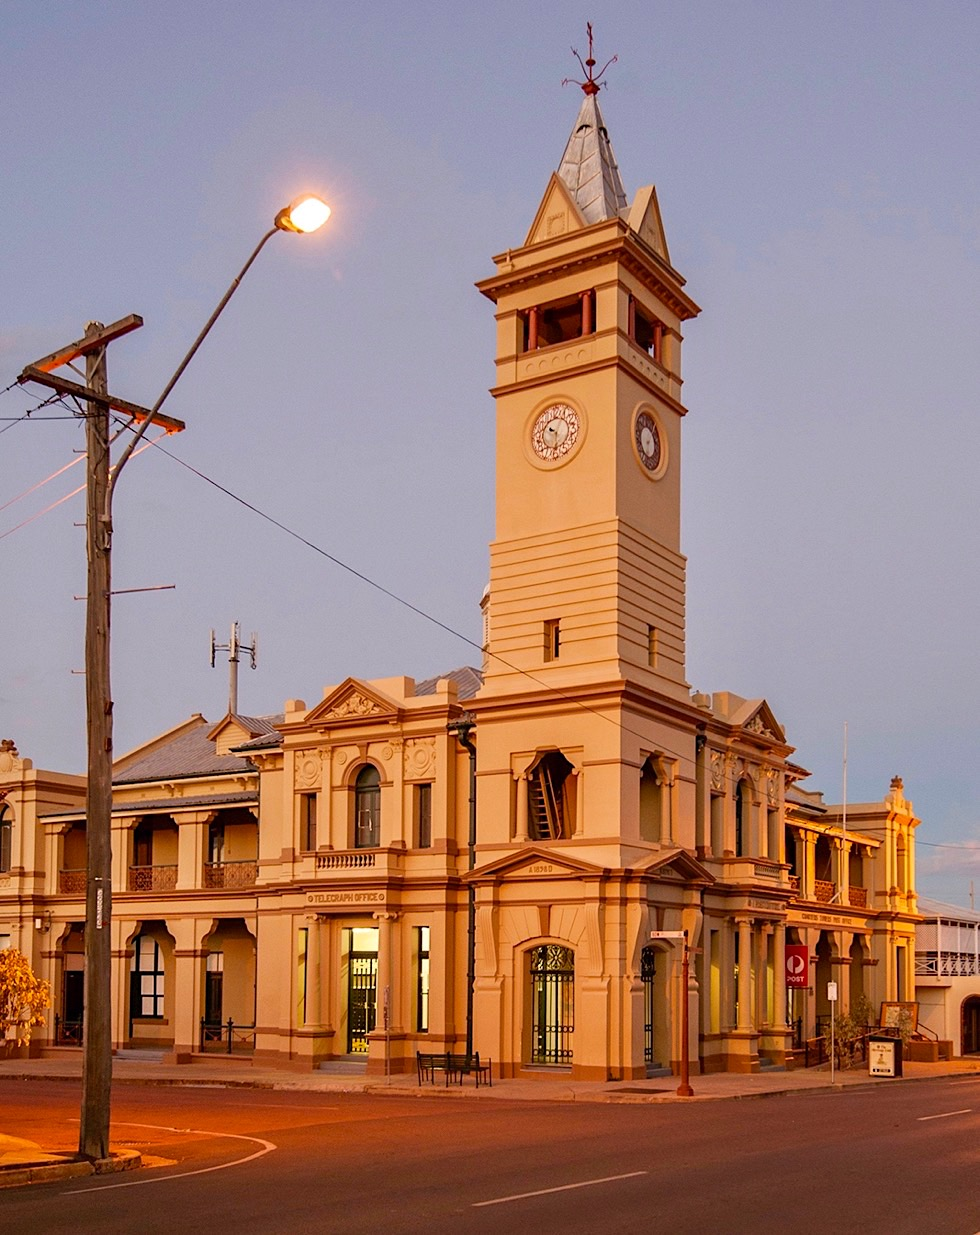 Charters Towers - Post Office am Abend - Queensland